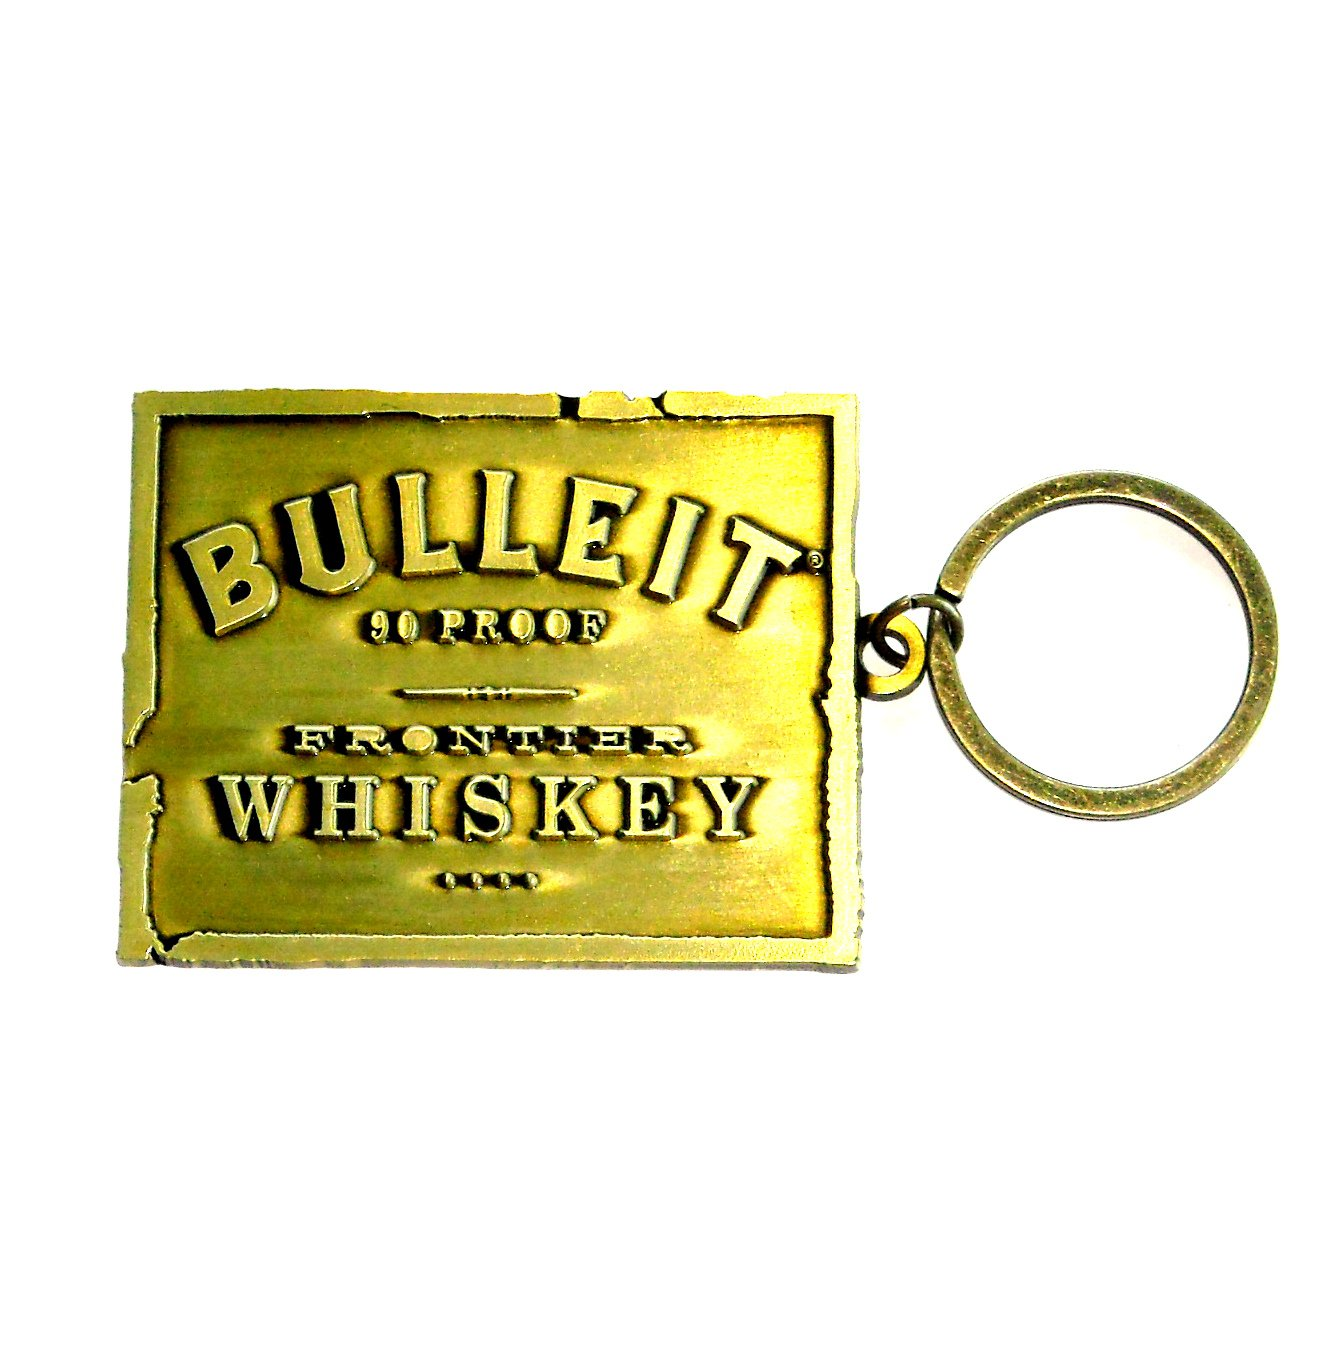 Bulleit Frontier Whiskey Solid Brass Fob Key Ring Keychain